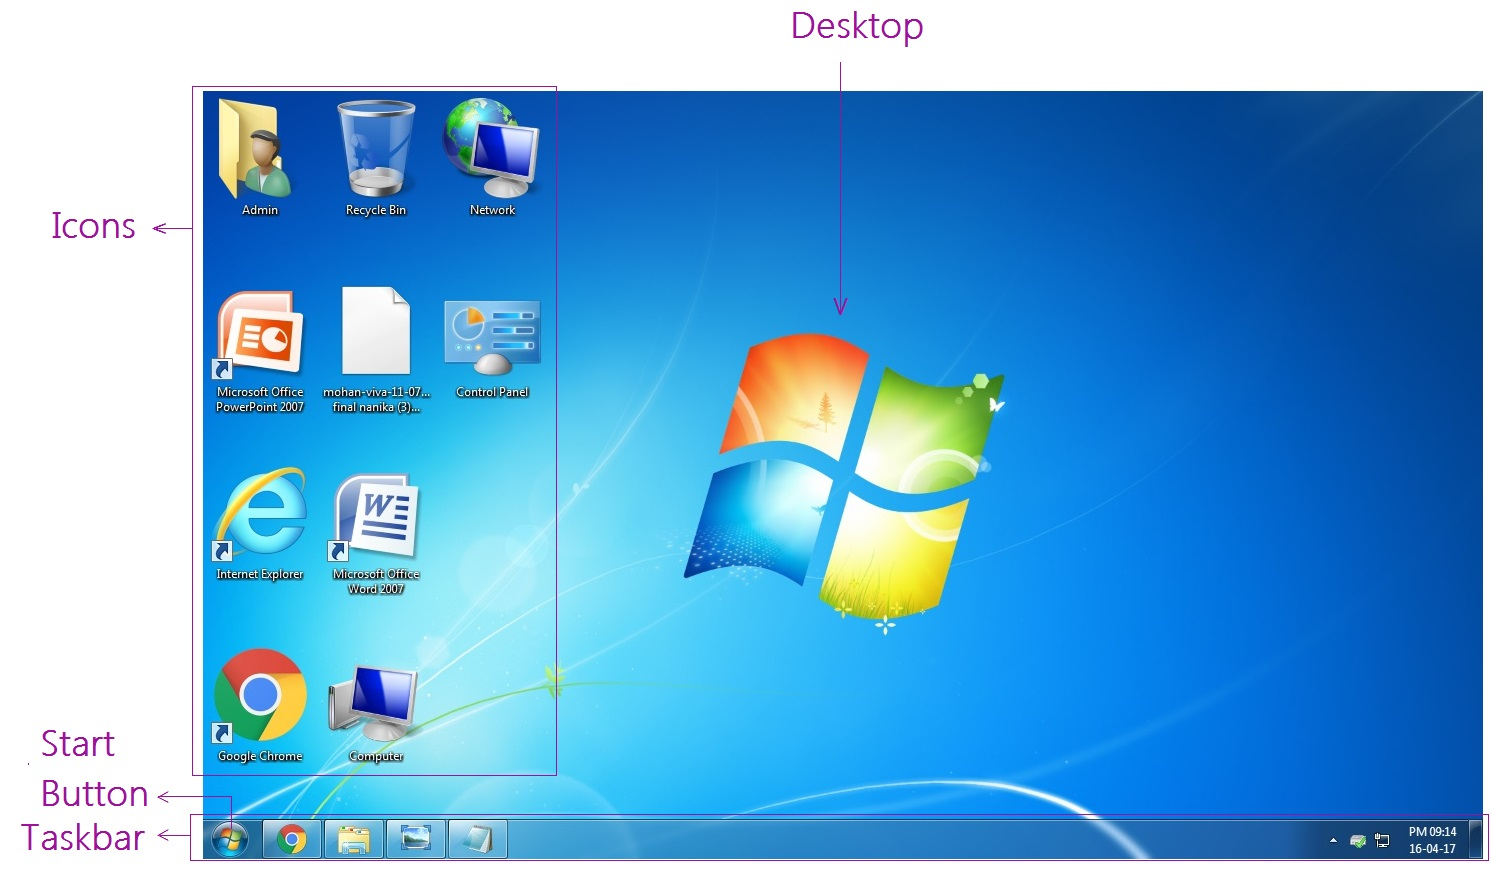 Components of Windows 7